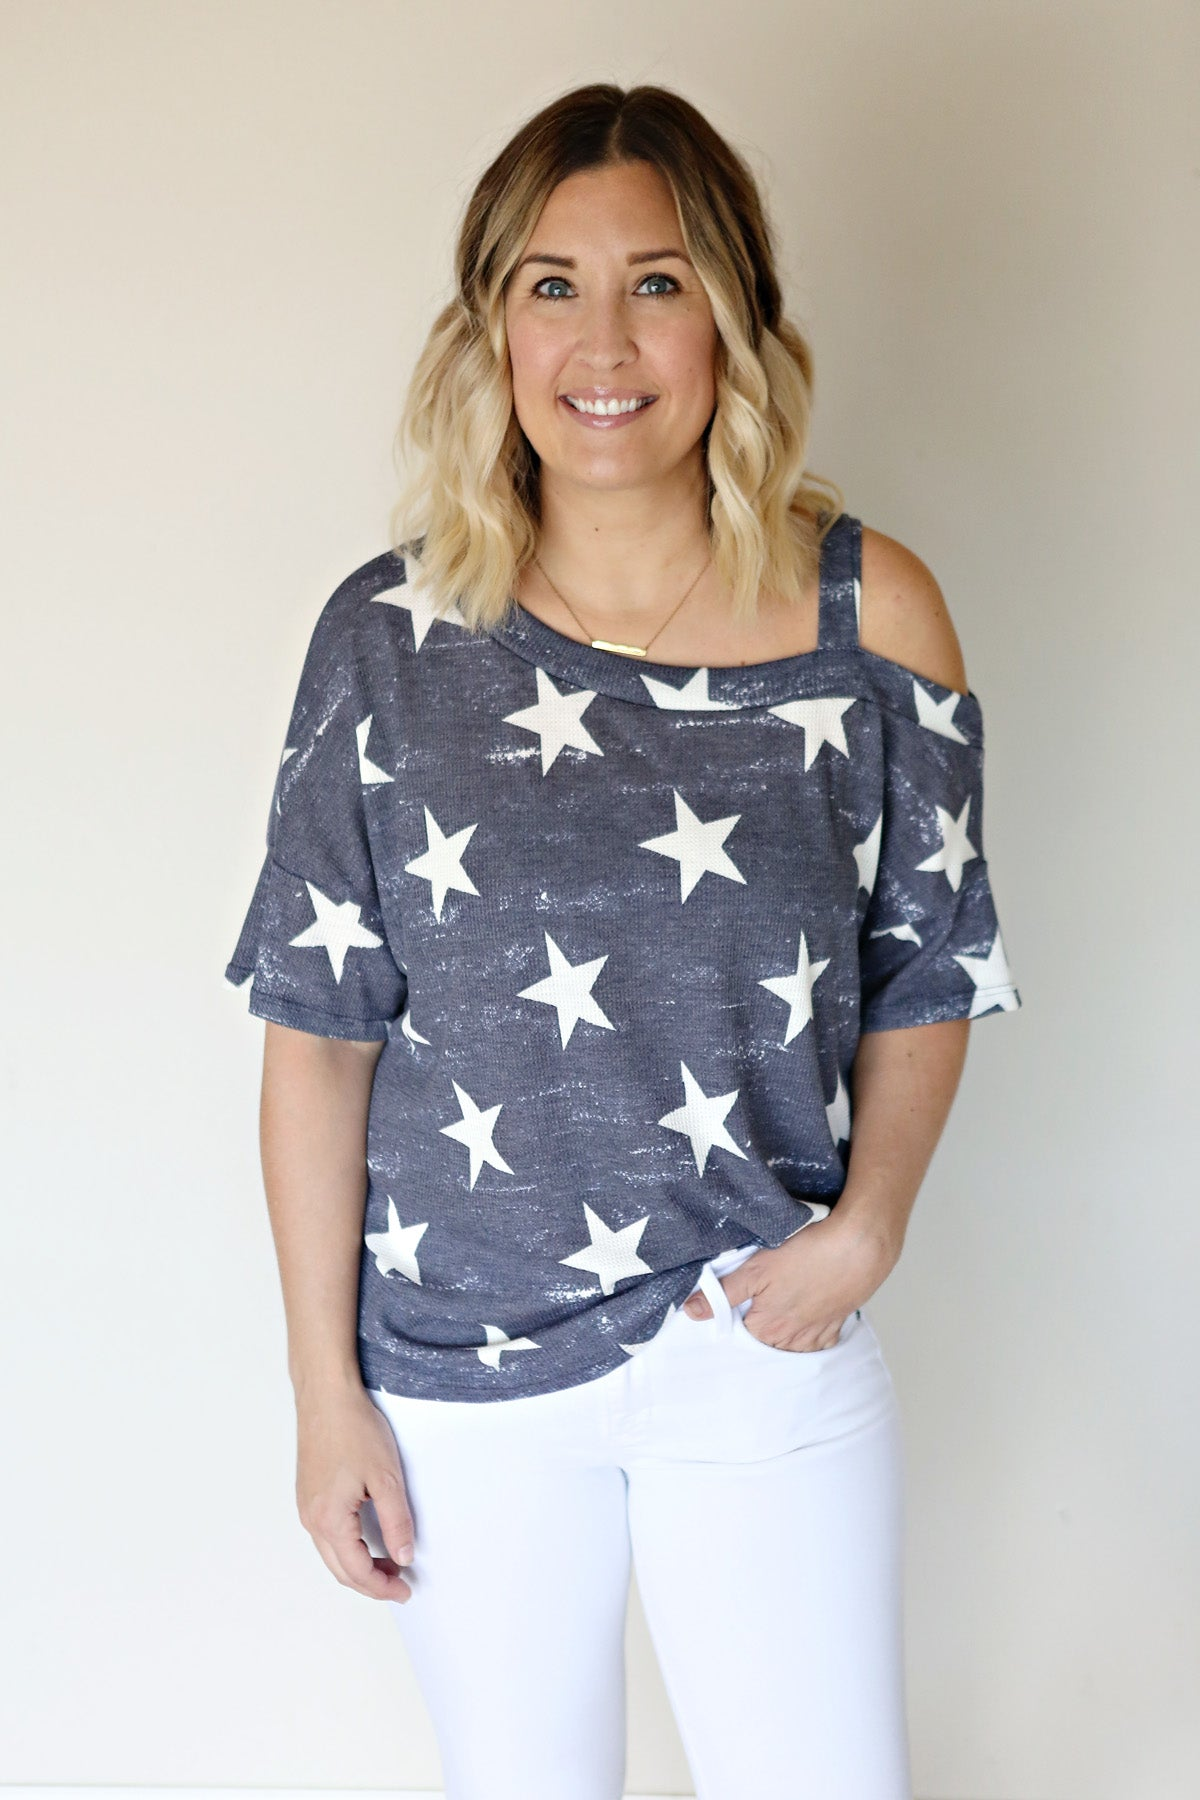 Starry Night Top - TAKE 50% OFF WITH CODE 'GOODBYESUMMER'